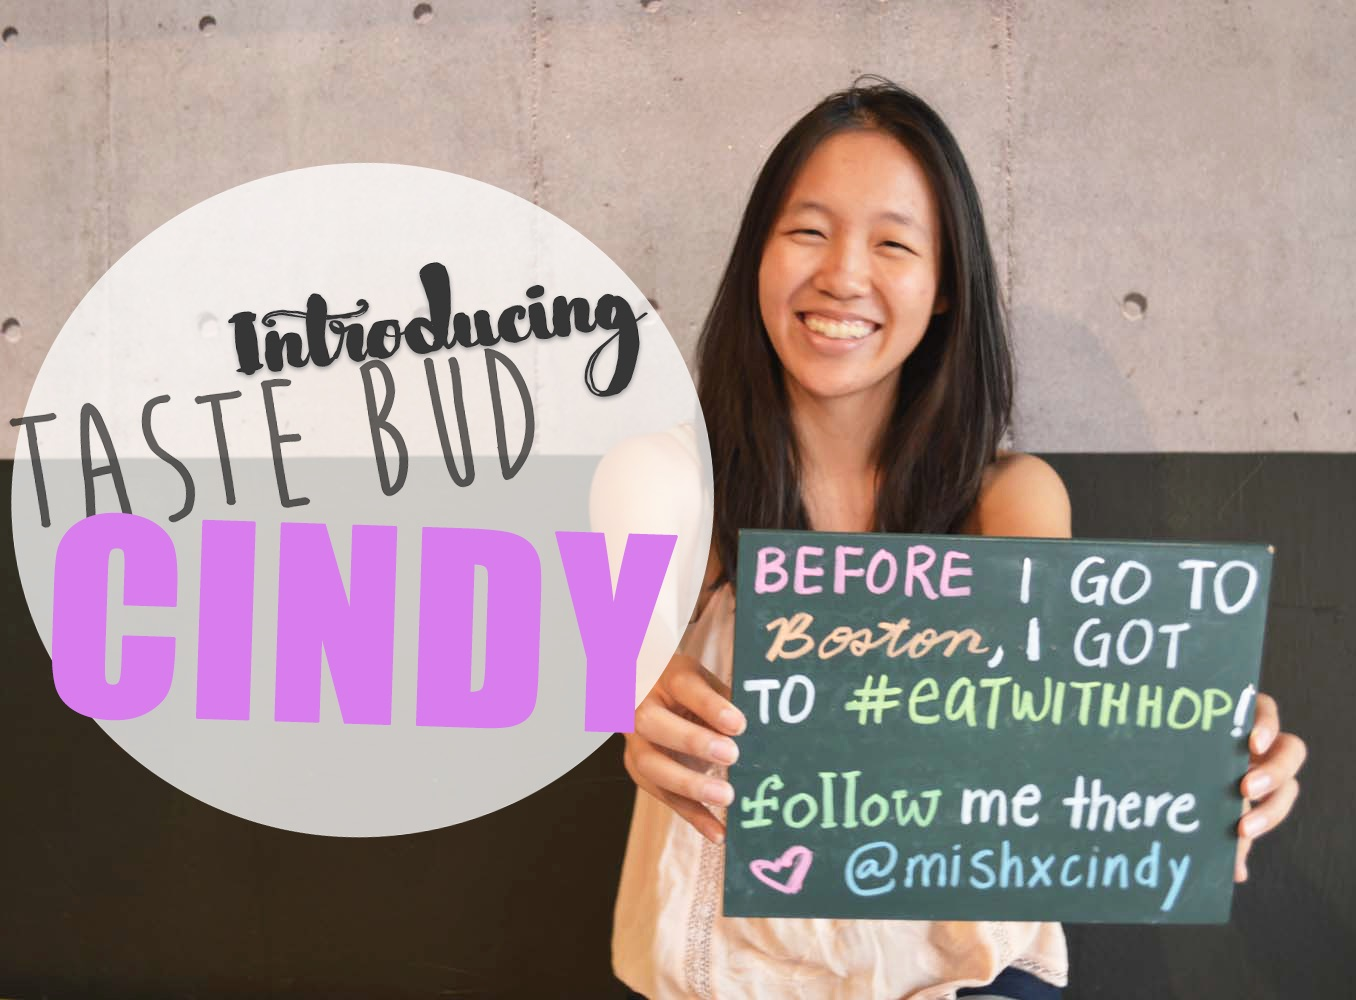 MEET MY TASTE BUD: CINDY